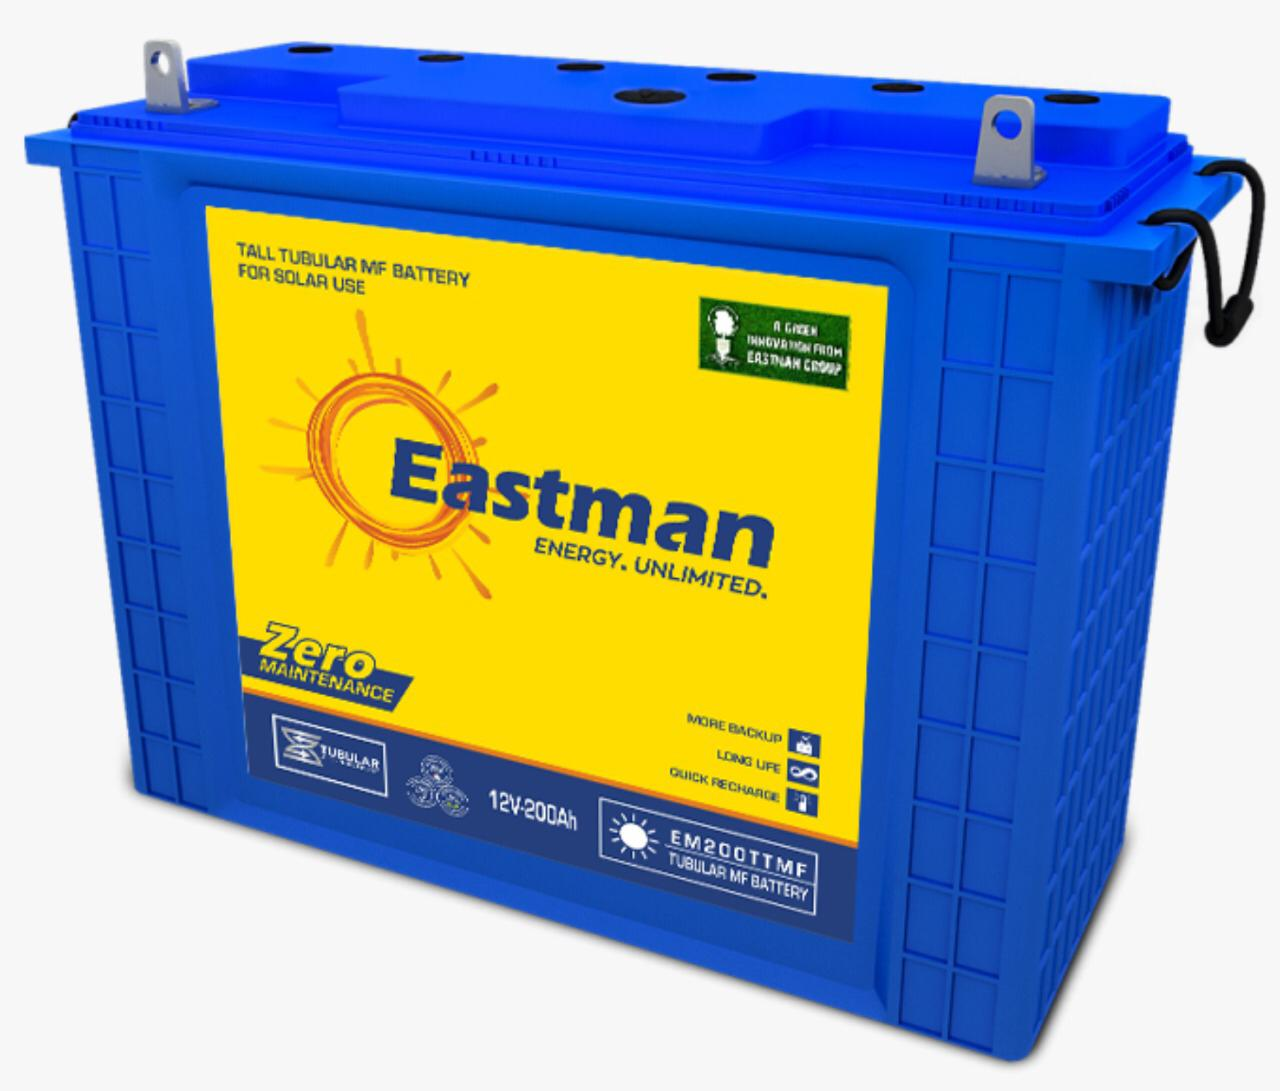 12V/200AH Eastman battery